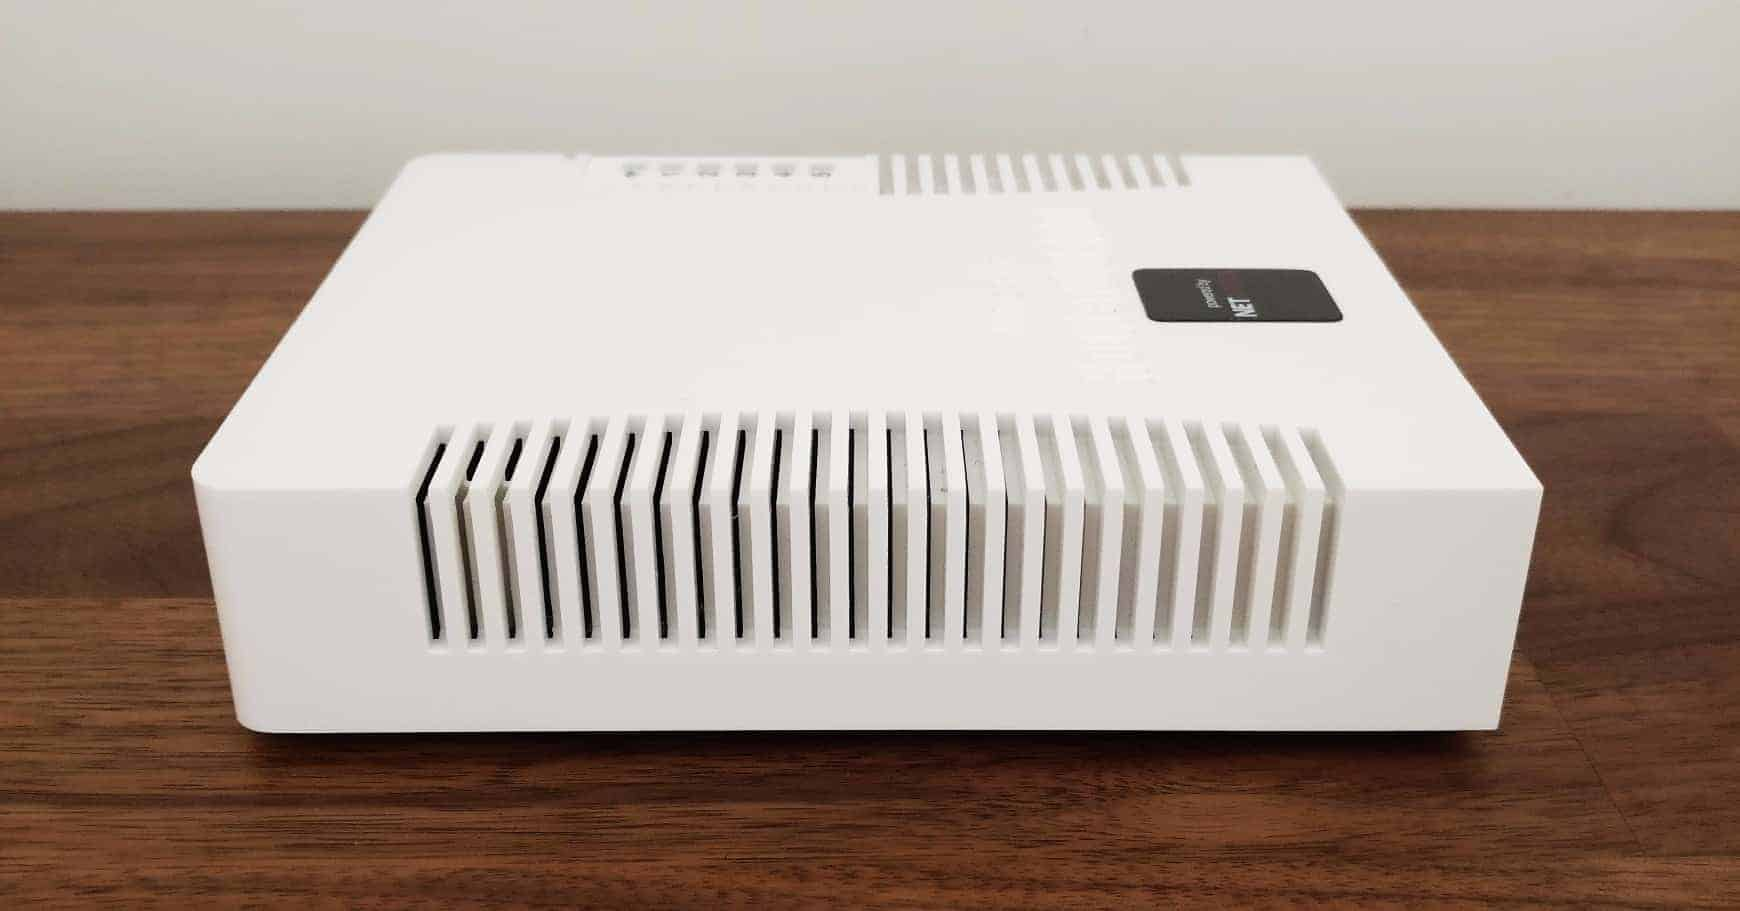 Netduma R1 Gaming Router Review - The Streaming Blog